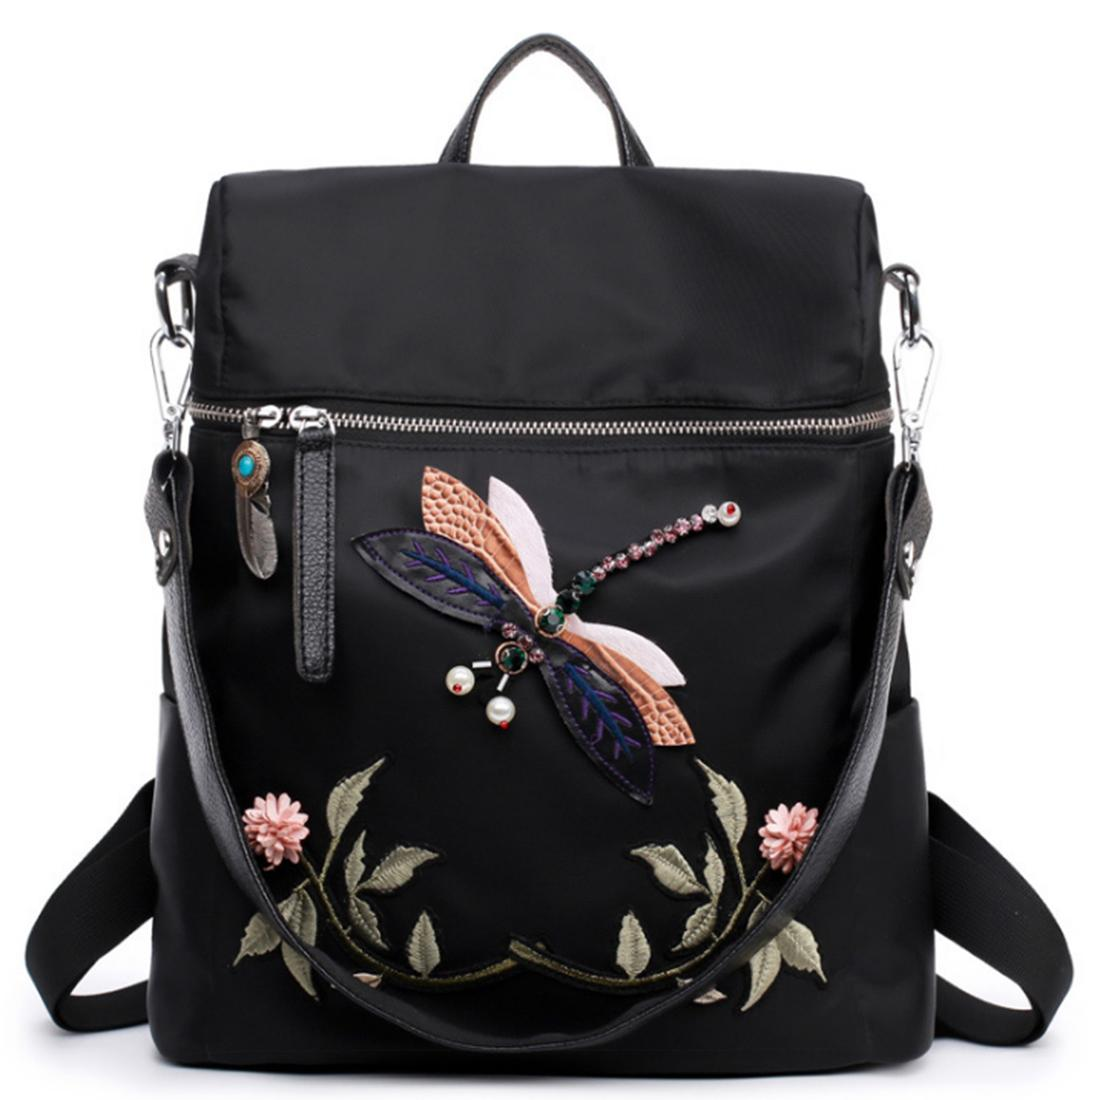 Dragonfly Embroidery Pattern Oxford Cloth Backpack Casual Travel Shoulders Bag - Black